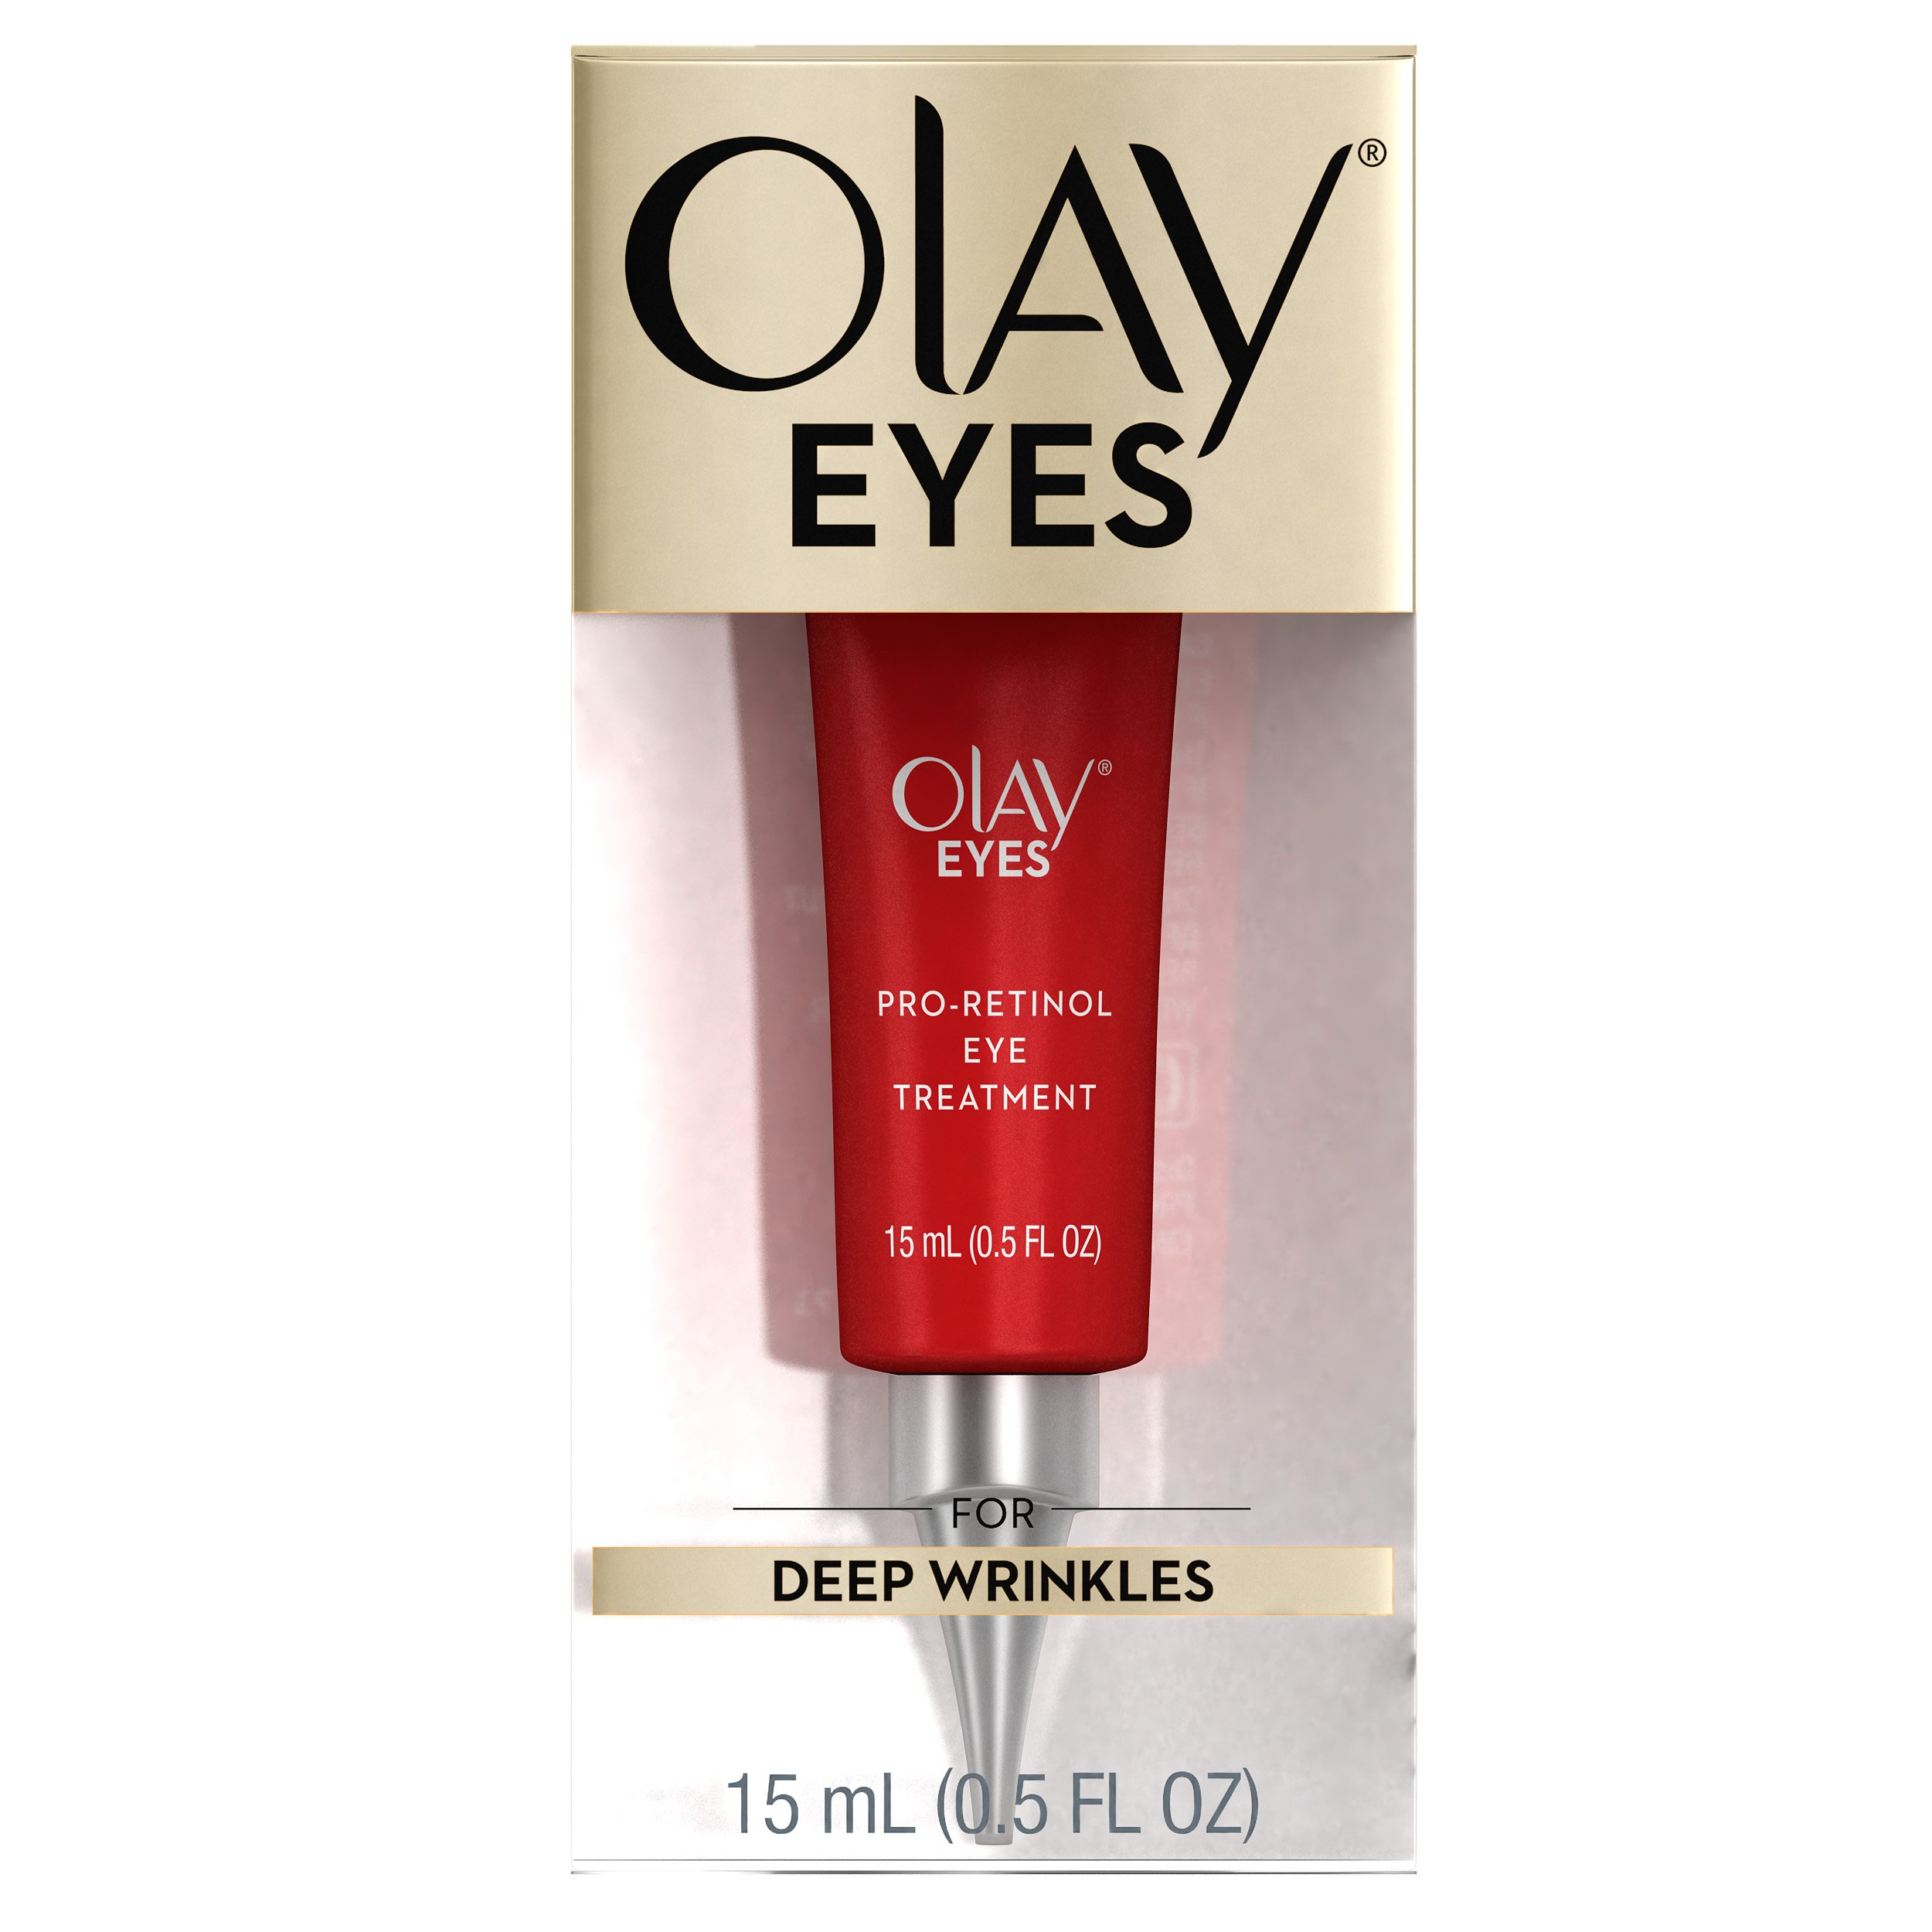 Olay Eyes Pro-Retinol Eye Cream Treatment to Reduce the look of Deep Wrinkles and Reflect Visibly Smoother, Younger-Looking Eyes, 0.5 Fl Oz  Packaging may Vary